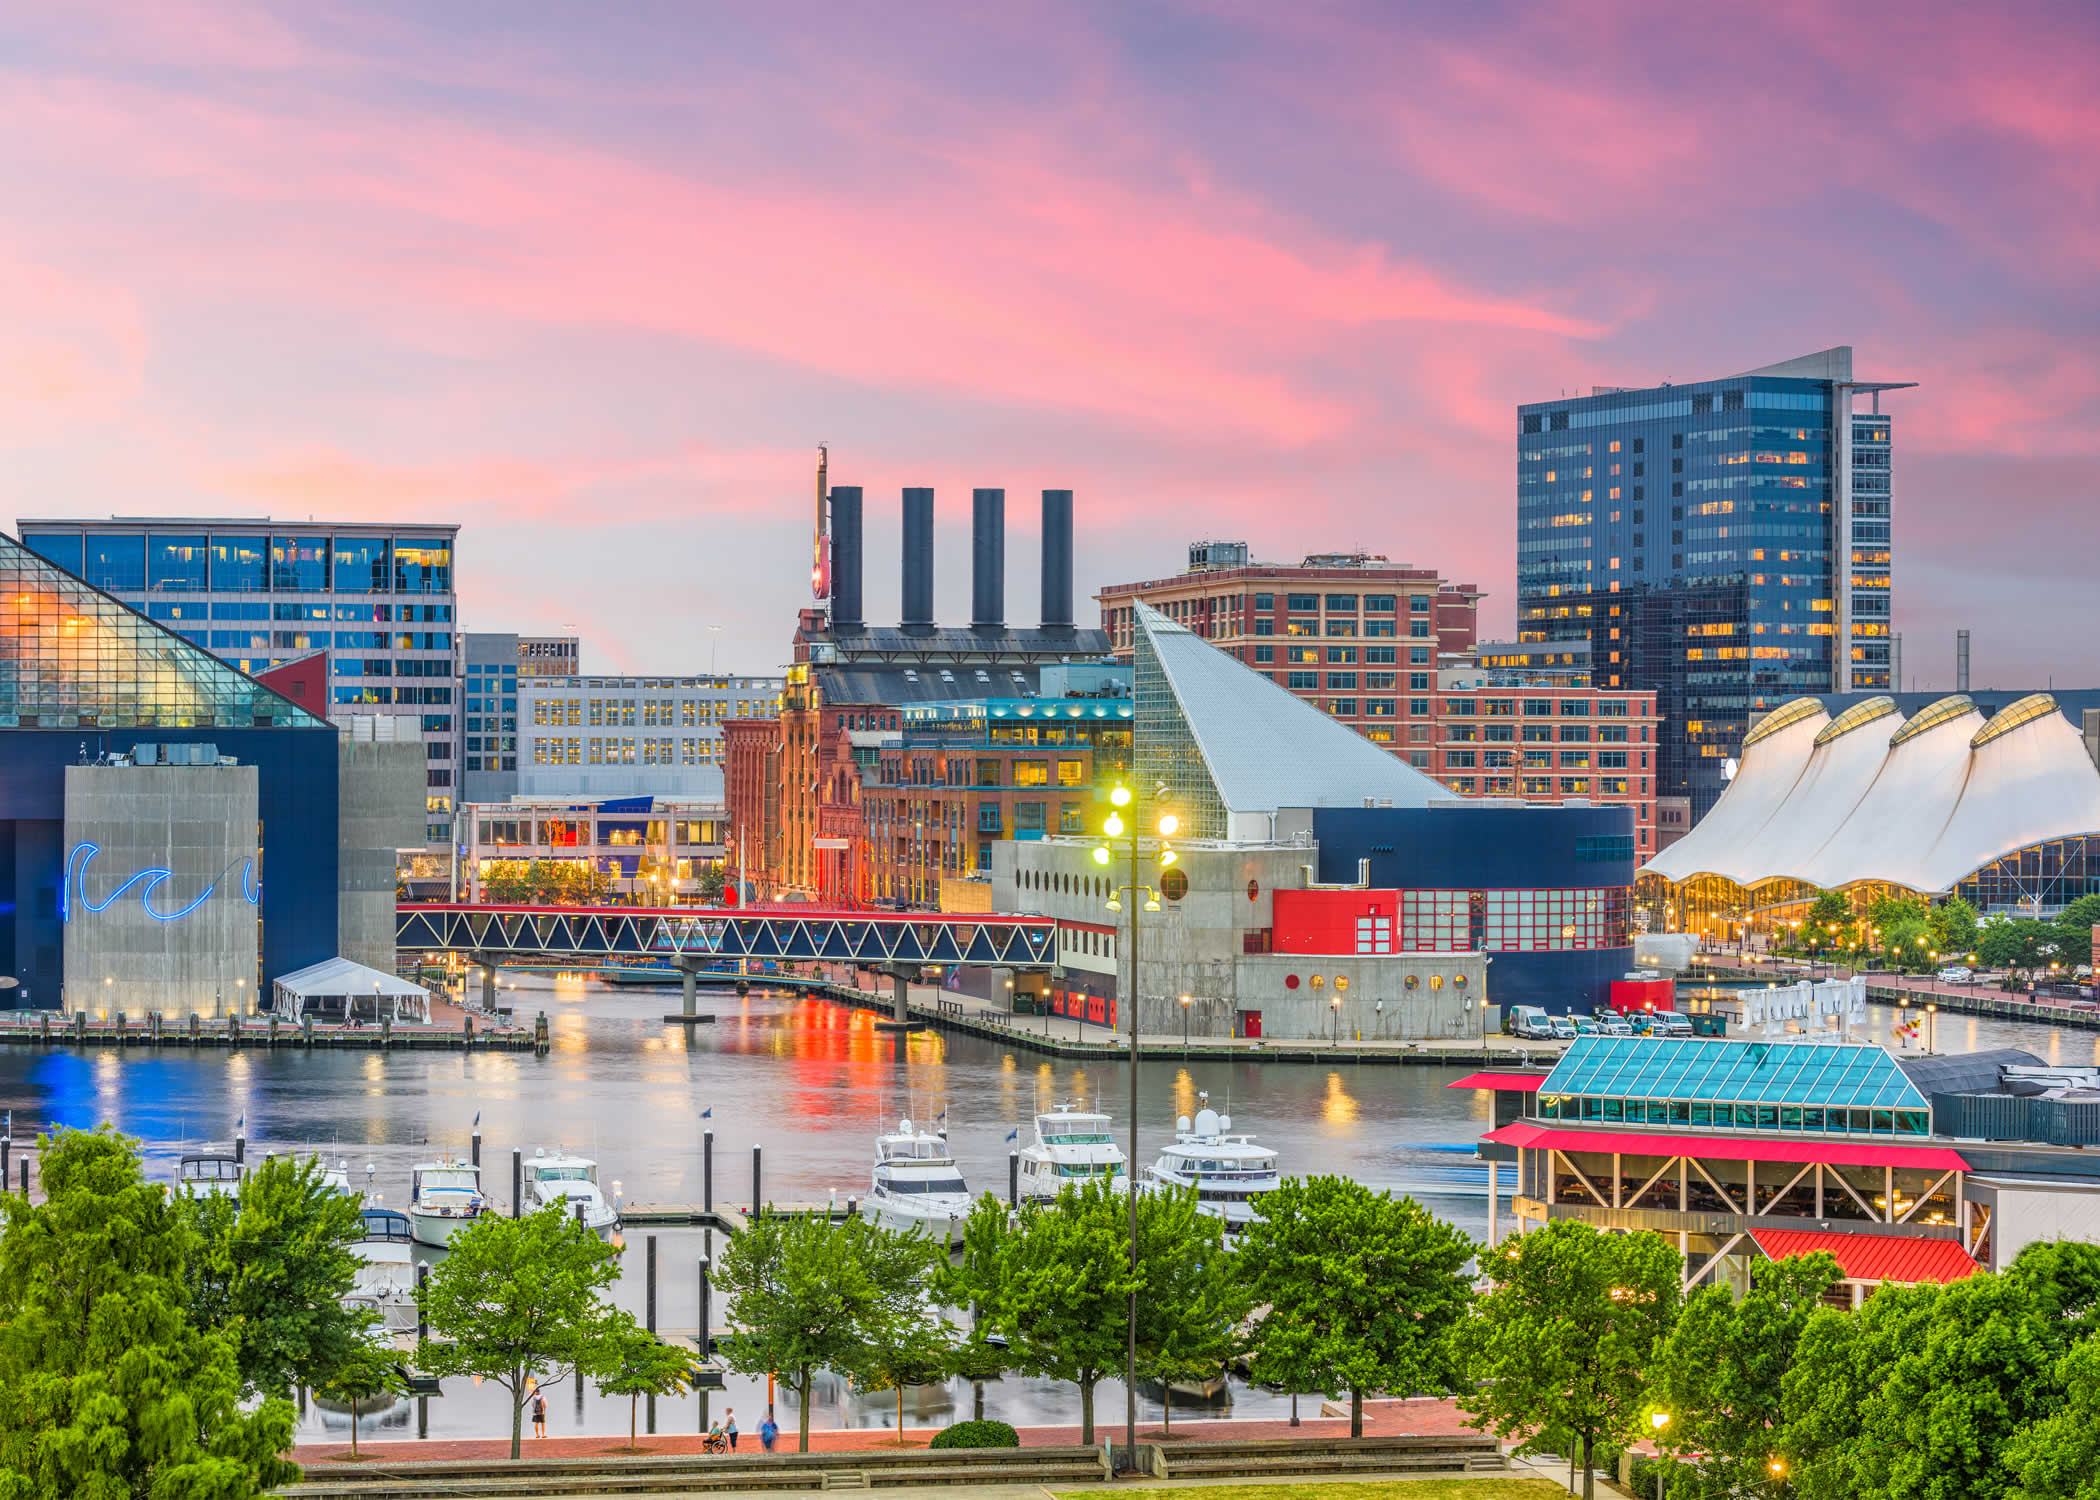 May 10, 2016 - OFCCP Compliance Reviews - Baltimore Industry Liaison Group Meeting - Baltimore, Maryland